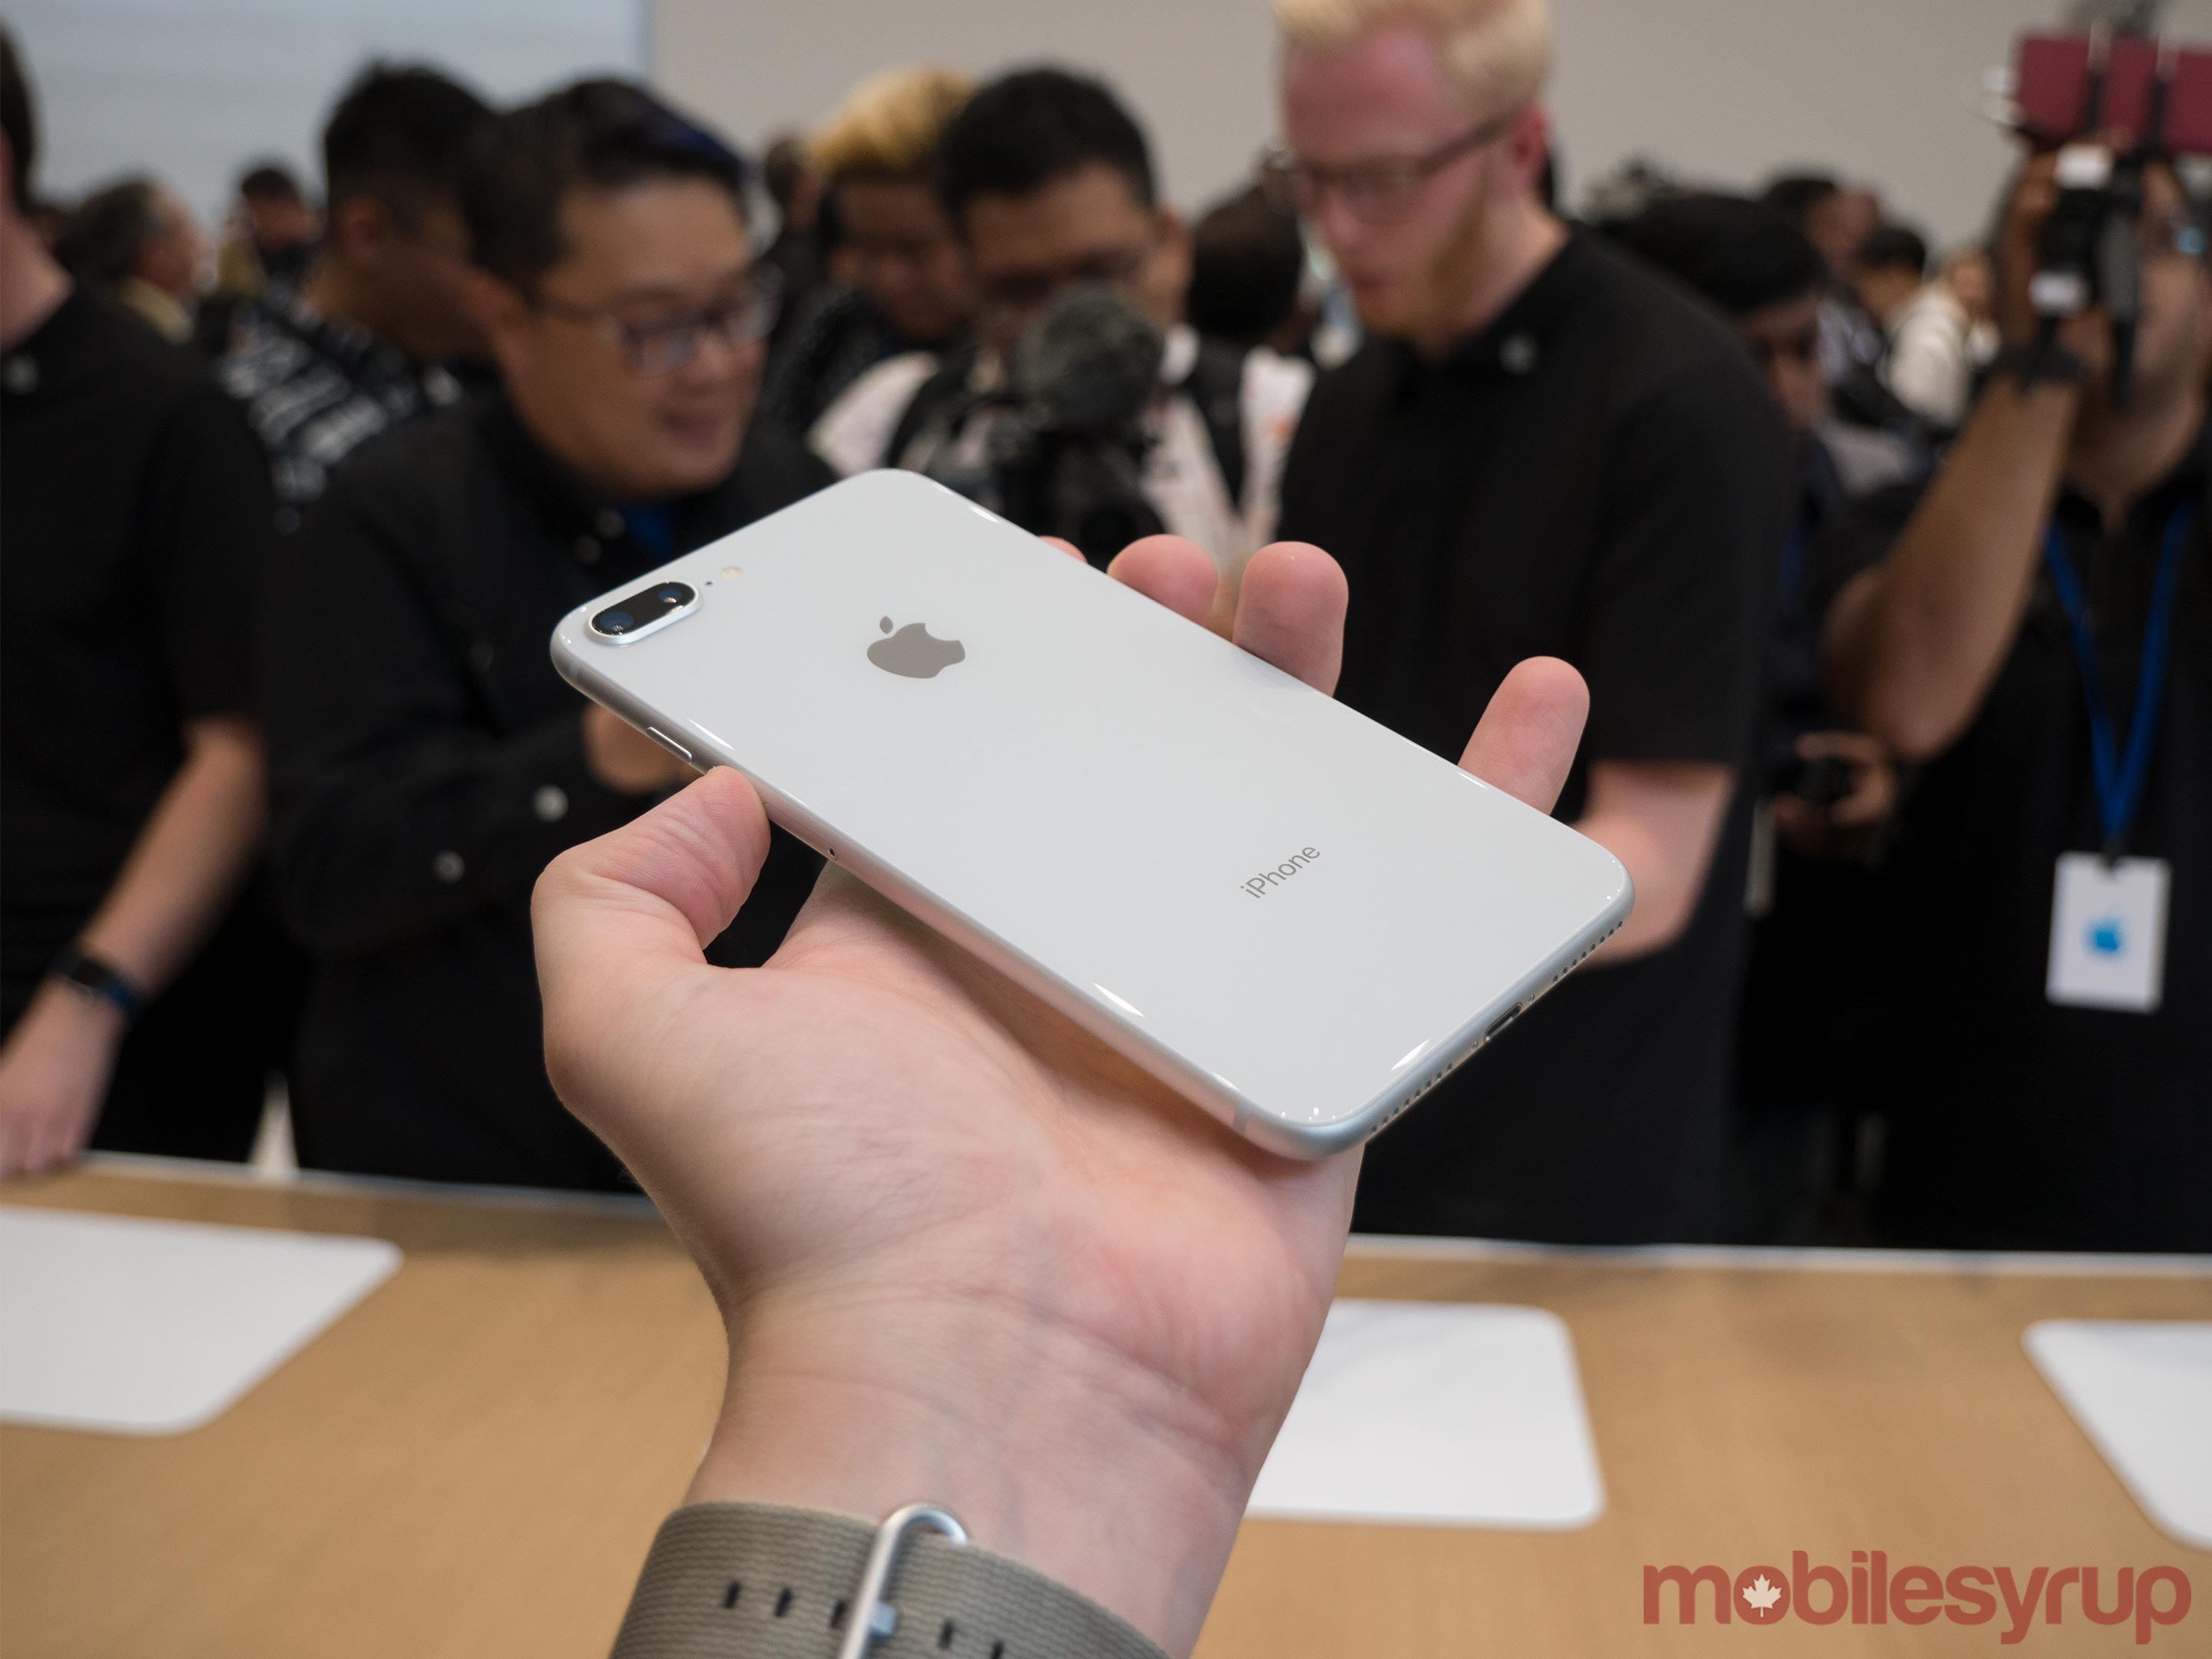 Side view of the iPhone 8 Plus